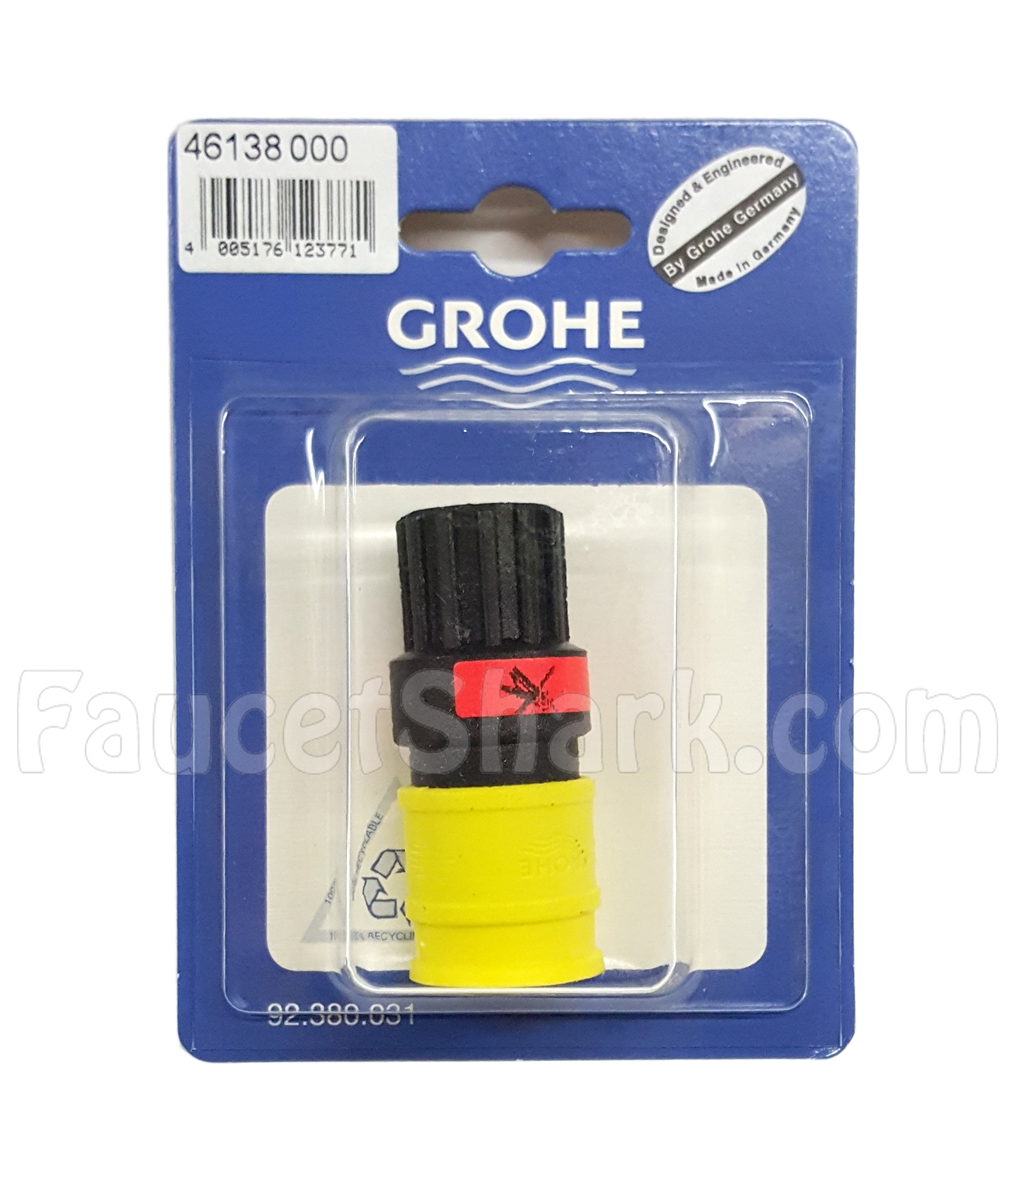 Grohe 46138000 Yellow and Black Quick Snap Coupling